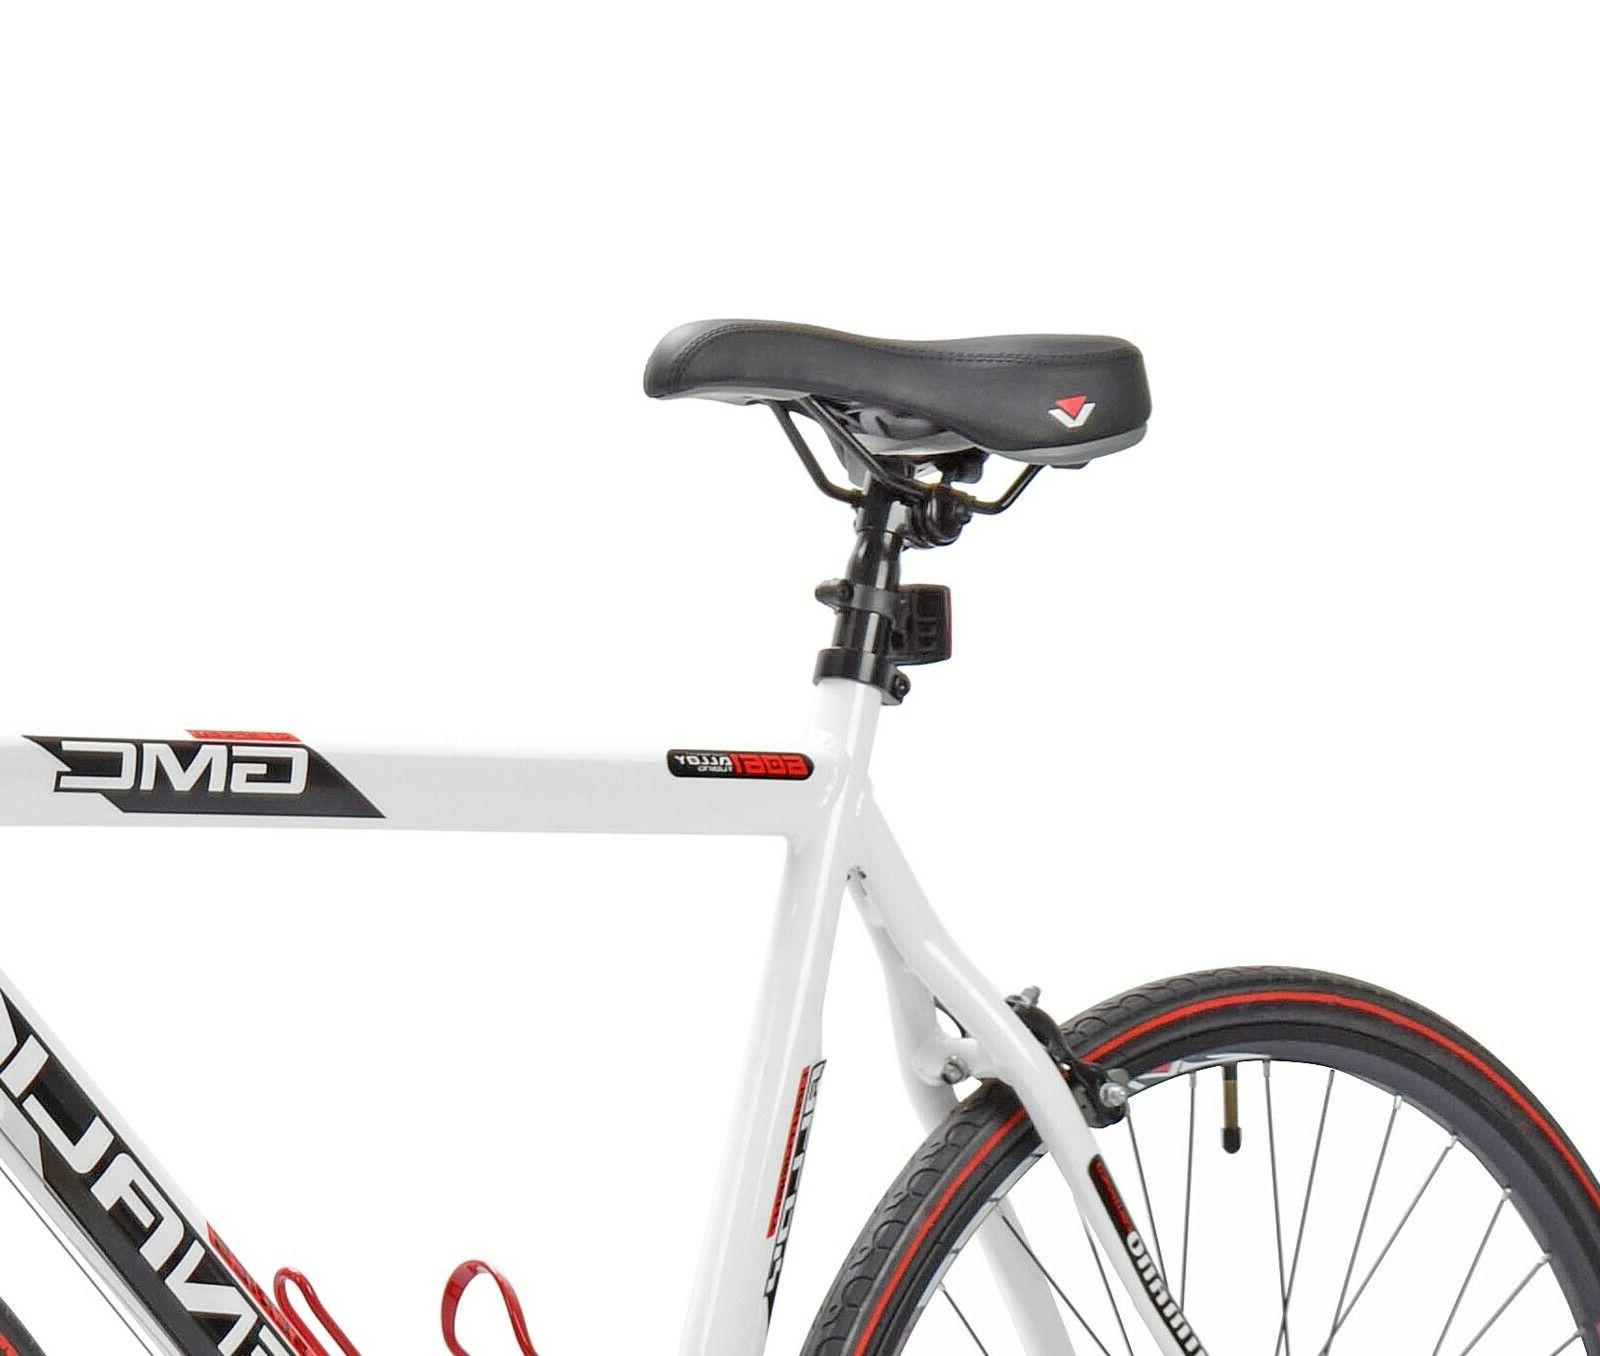 22.5' GMC Denali 700cc Men's Bike, White/Red